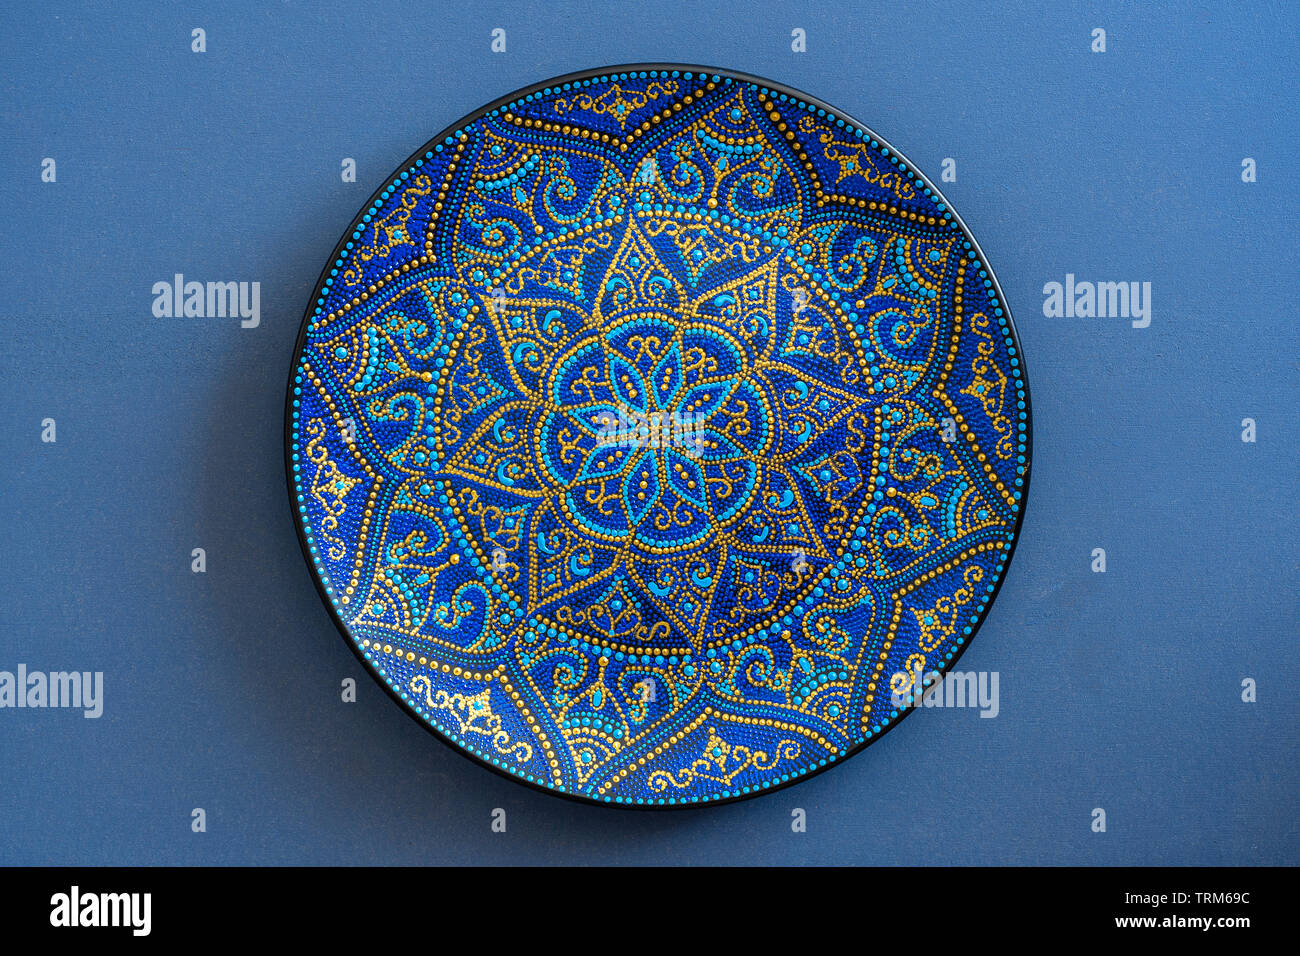 Decorative Ceramic Plate With Blue And Golden Colors